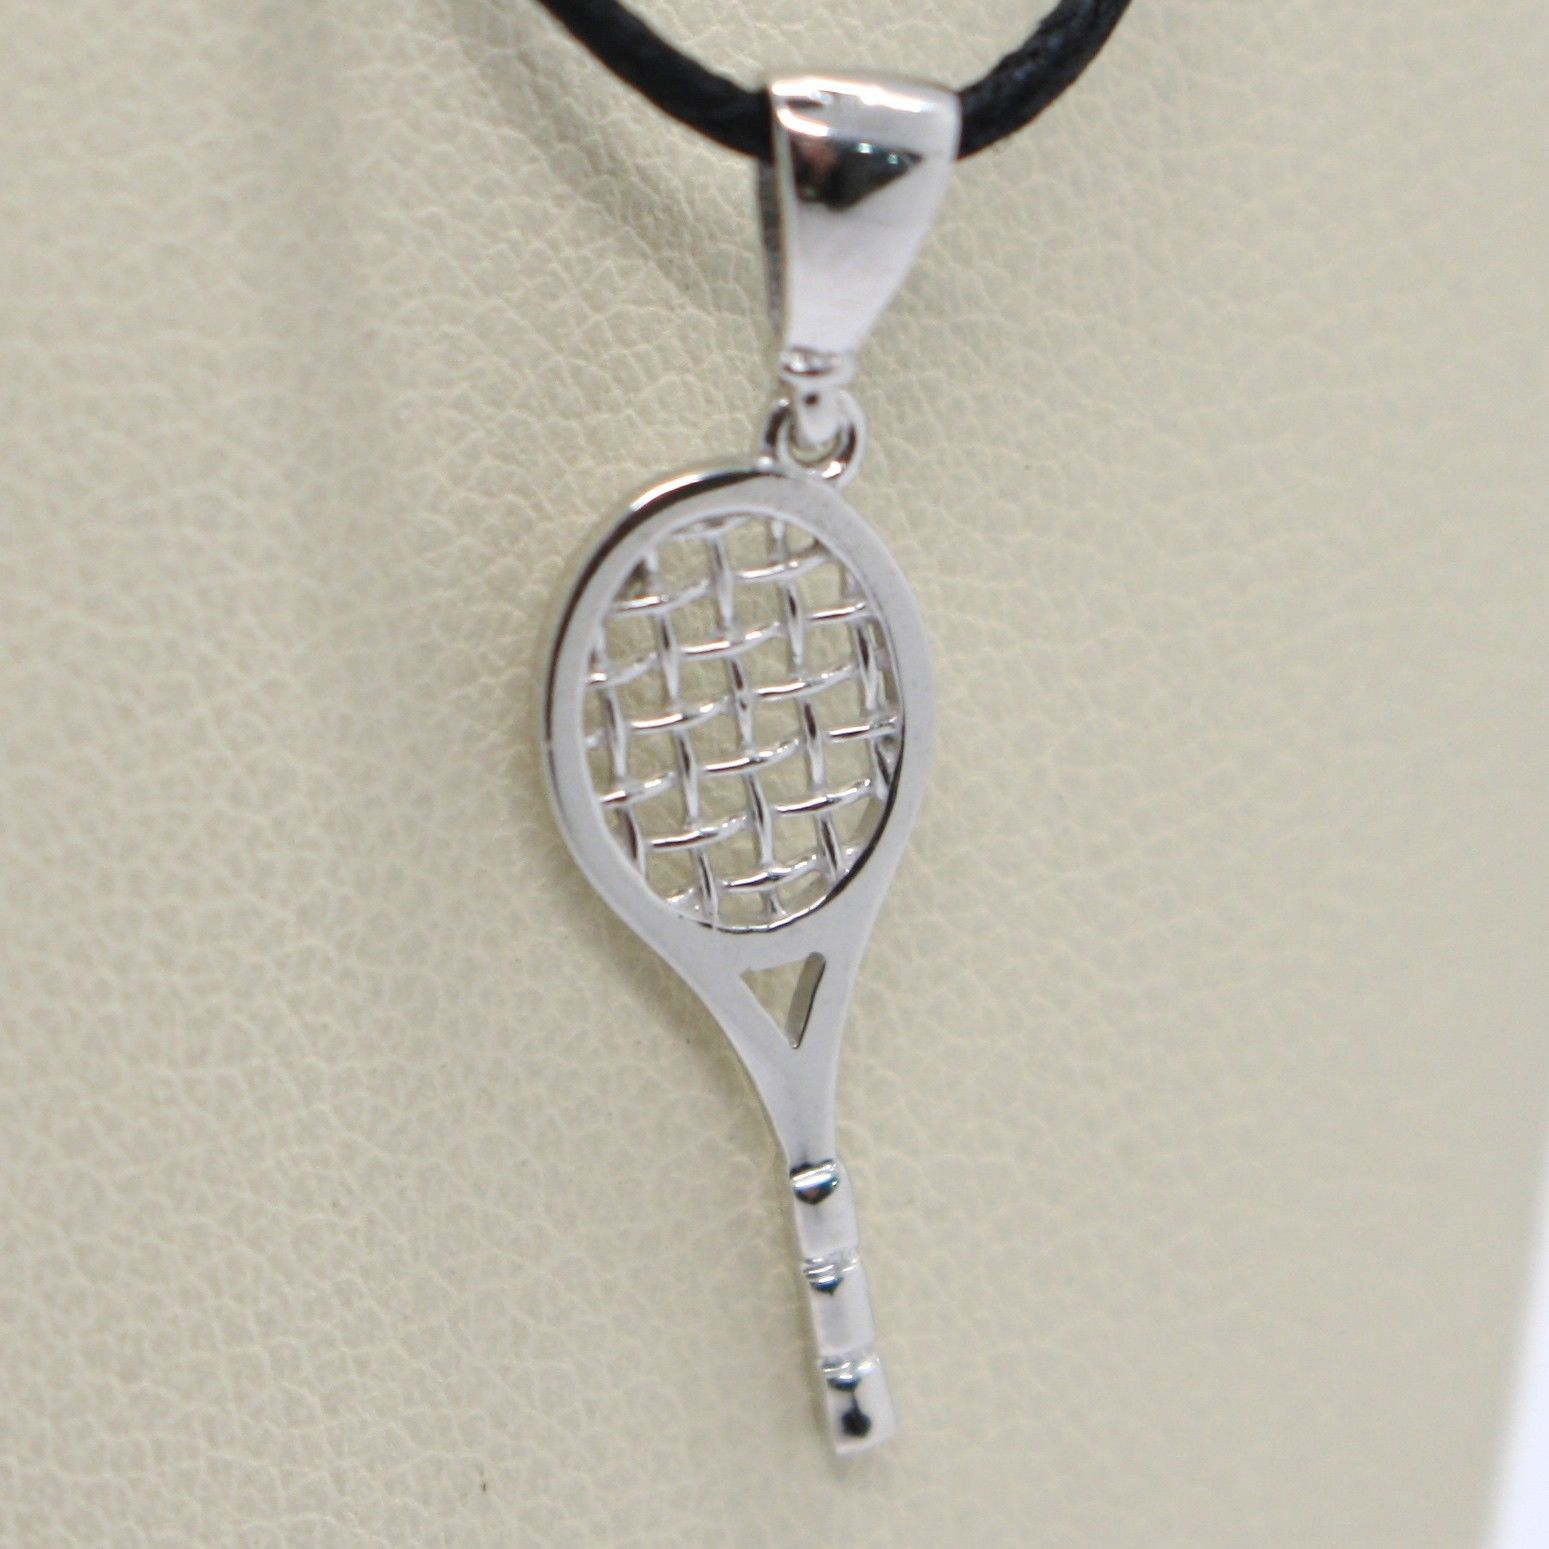 18K WHITE GOLD TENNIS RACKET PENDANT, CHARM, 20 mm, 0.8 inches, MADE IN ITALY